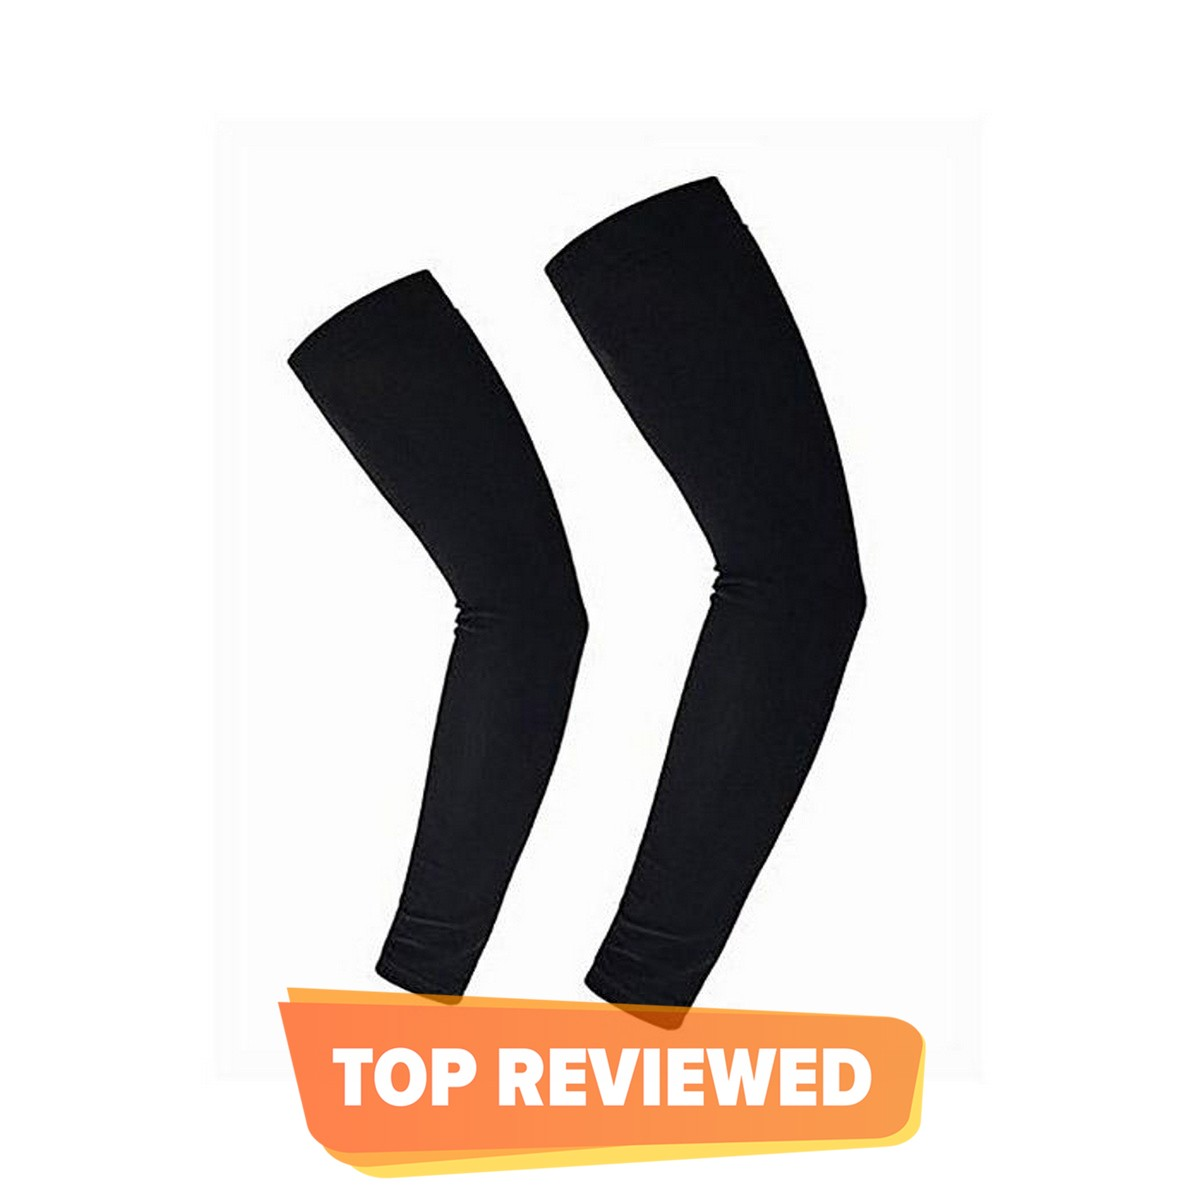 Sports Arm Sleeves Pair - Black Cycling Sleeves Quick Dry UV Protection Fishing Volleyball Running Arm Sleeves Women's Sports Set Arm Warmers Compression Sleeve